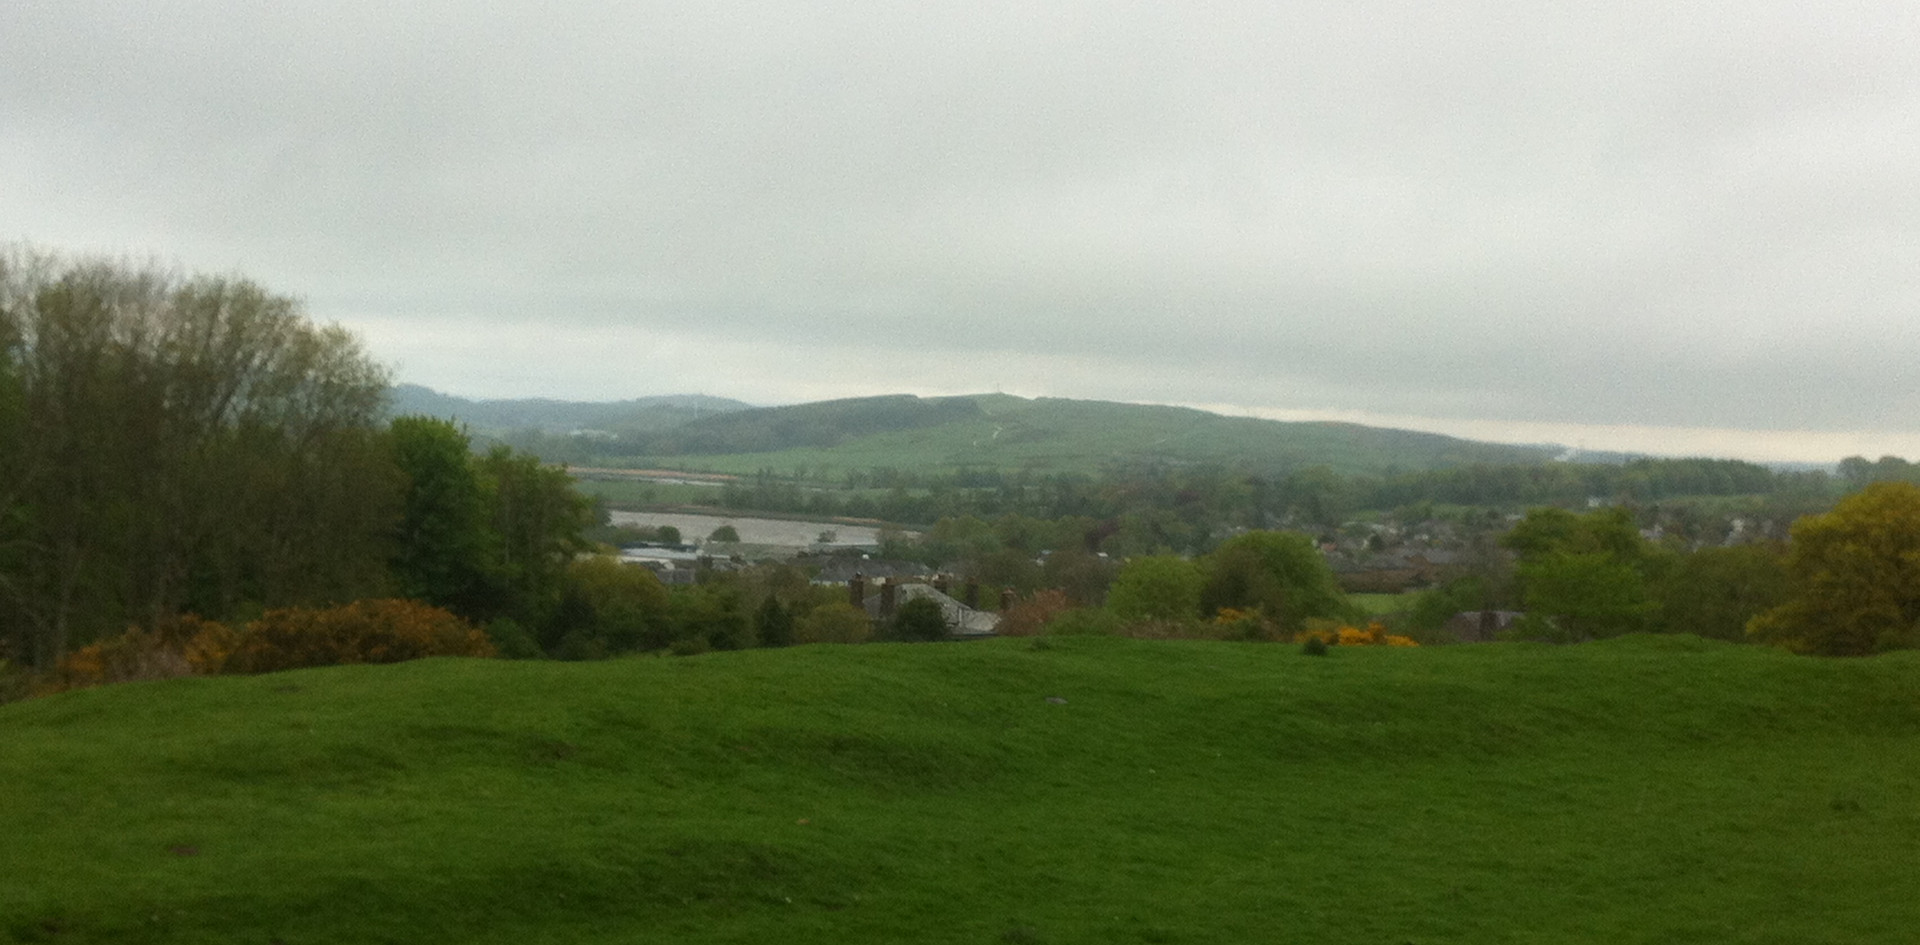 The green hills of Kirkcudbright's surrounding countryside